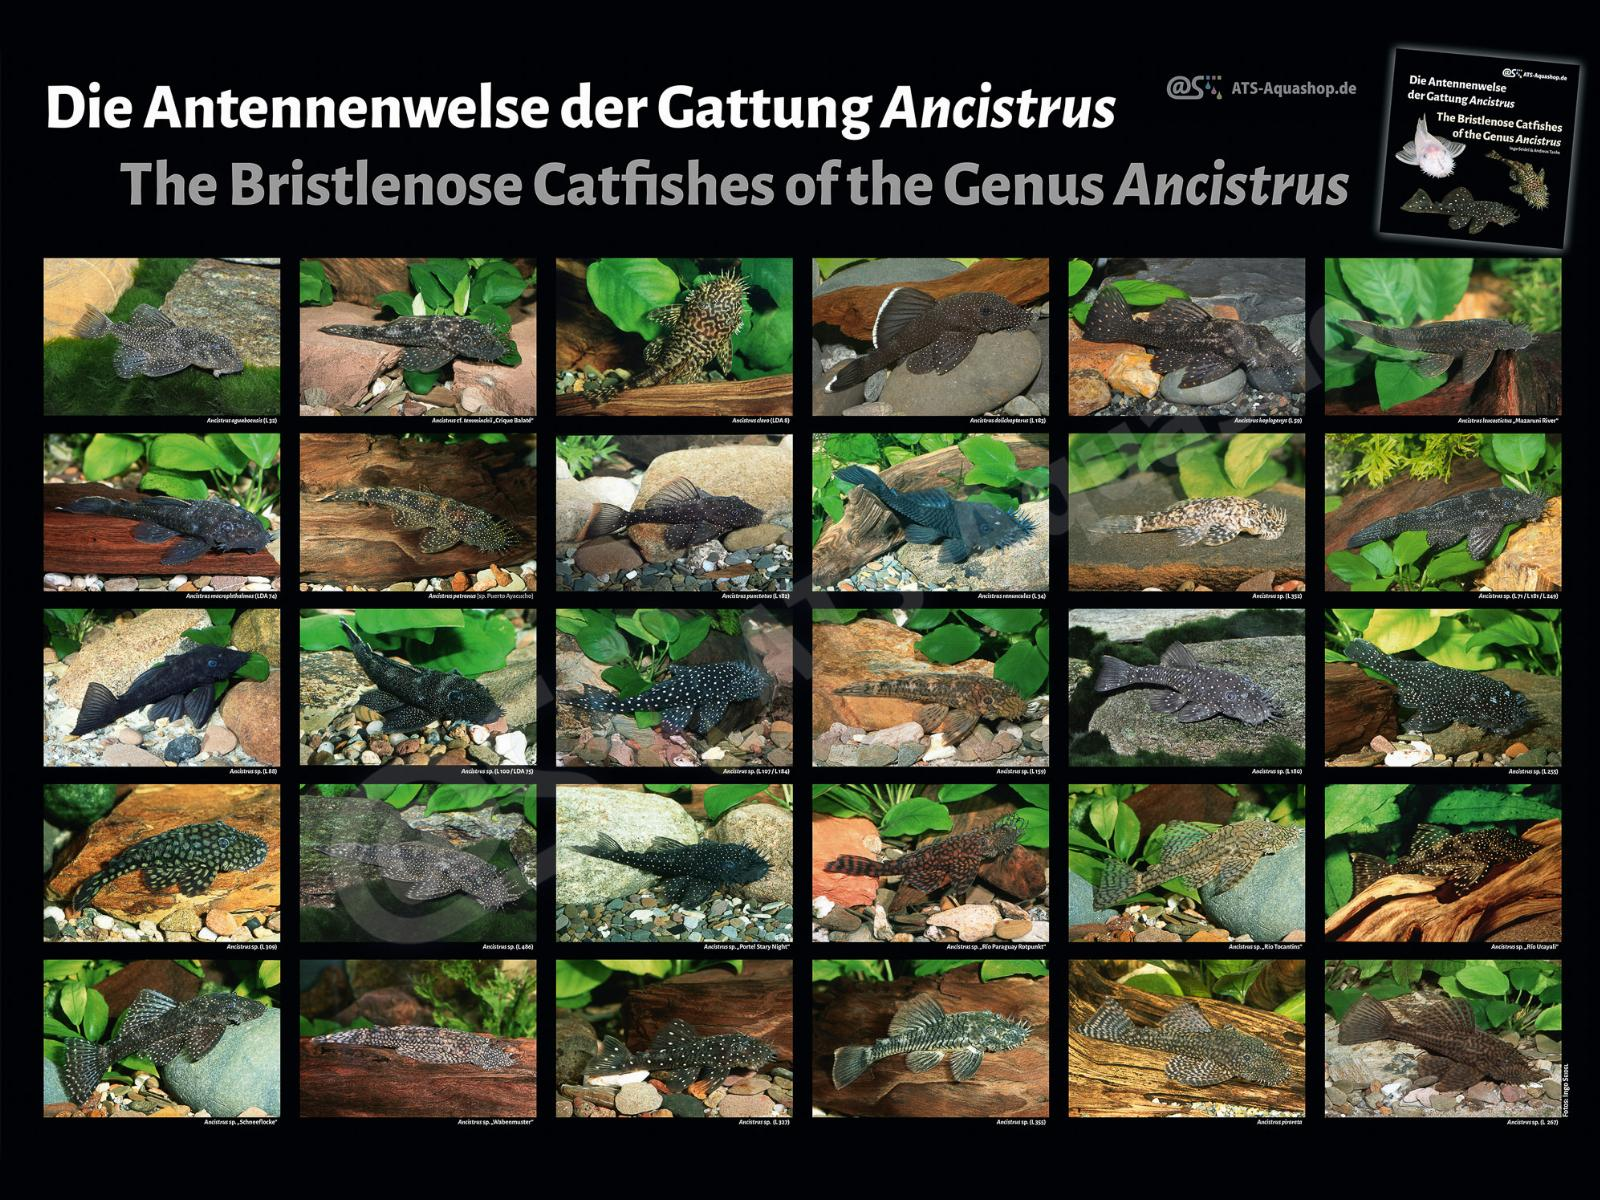 Posters: The Bristlenose Catfishes of the Ancistrus (Ingo Seidel)